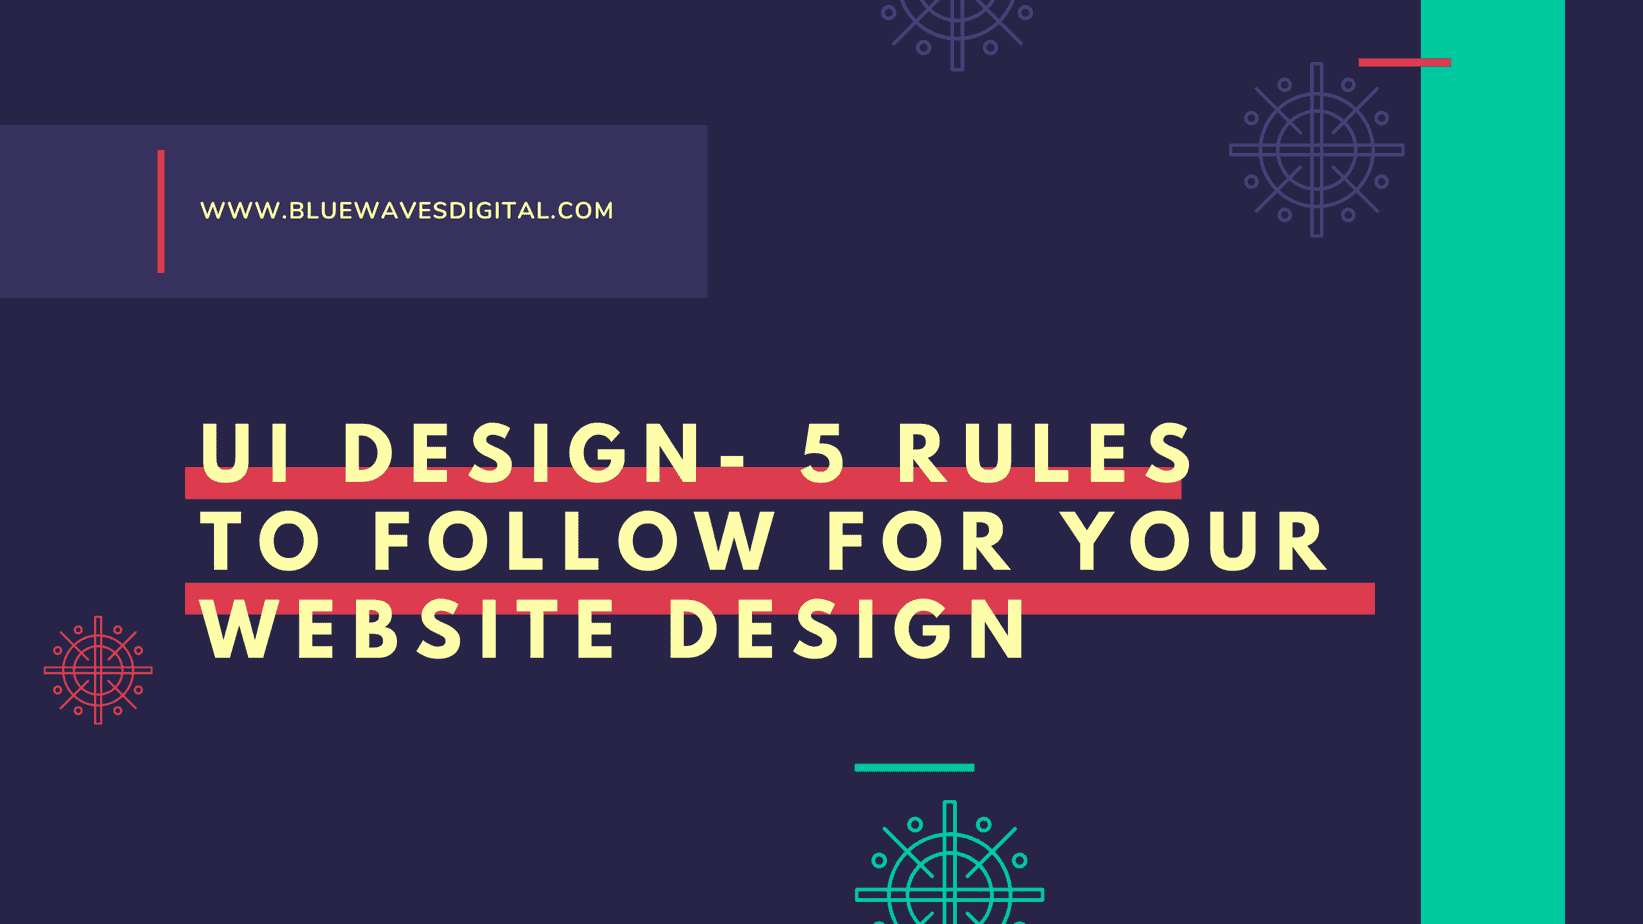 UI Design - 5 Rules to Follow on Your Website's Design